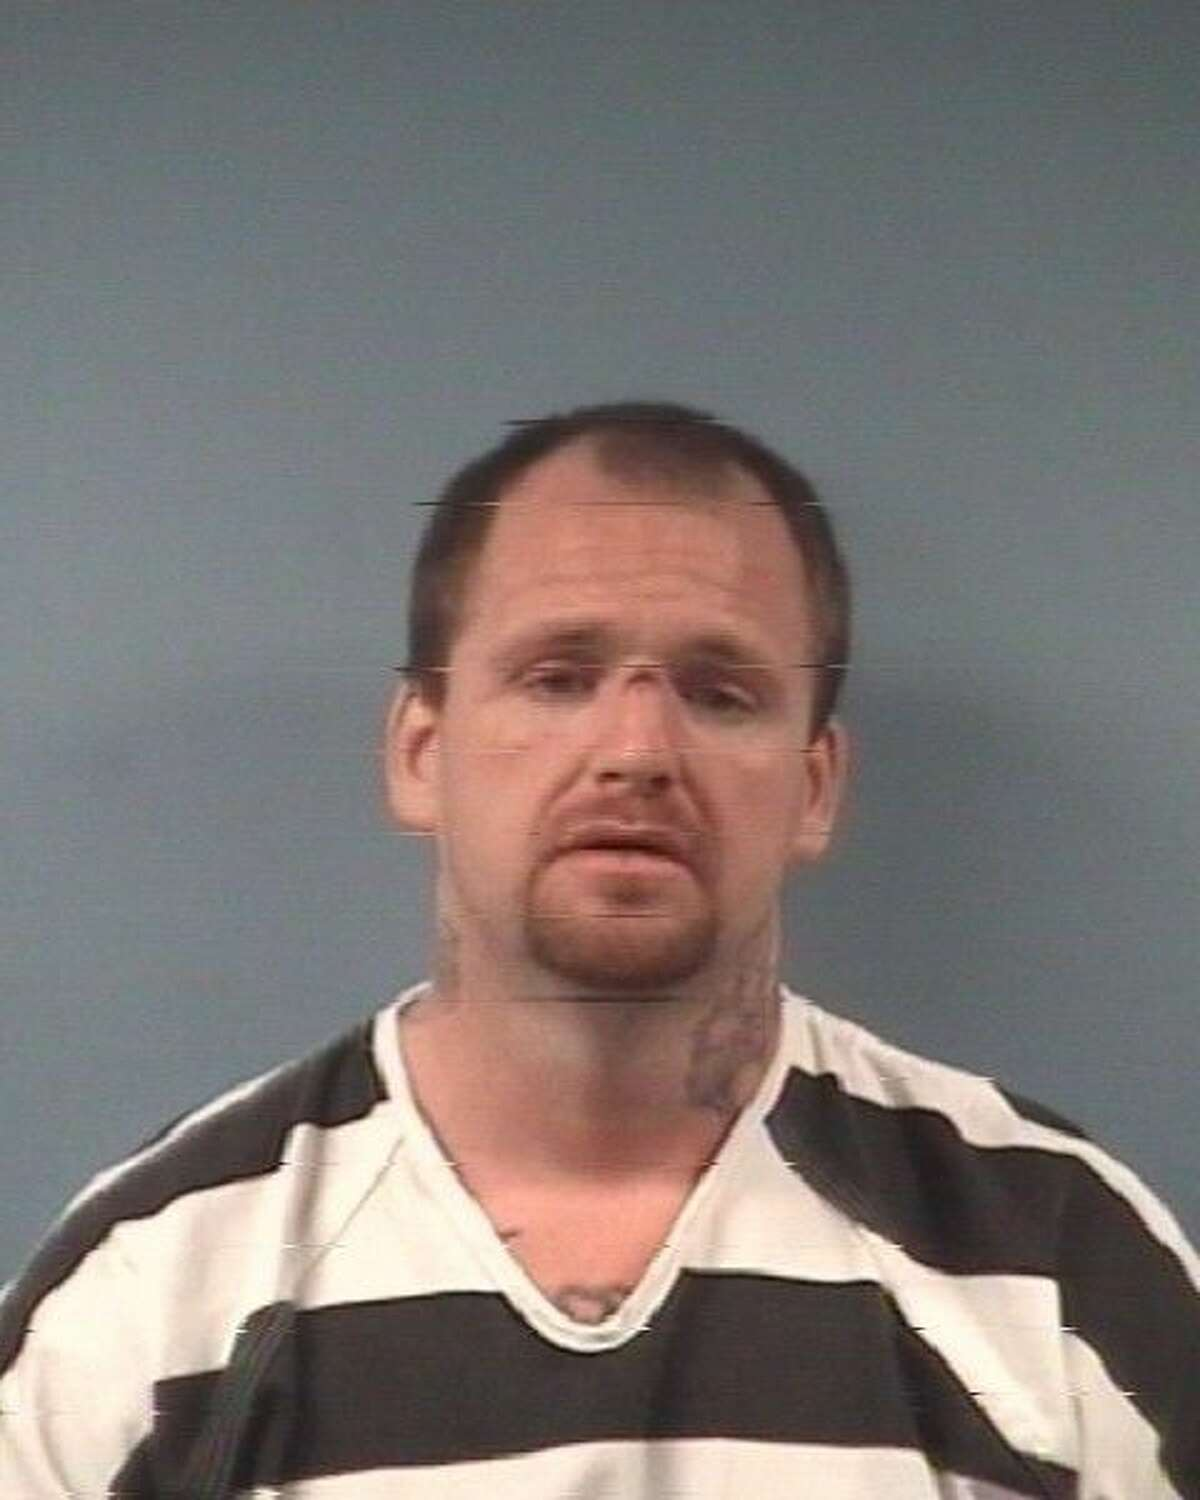 Donald Levi Coffin, 31, of Channelview, was recently arrested on charges of burglary of a motor vehicle.